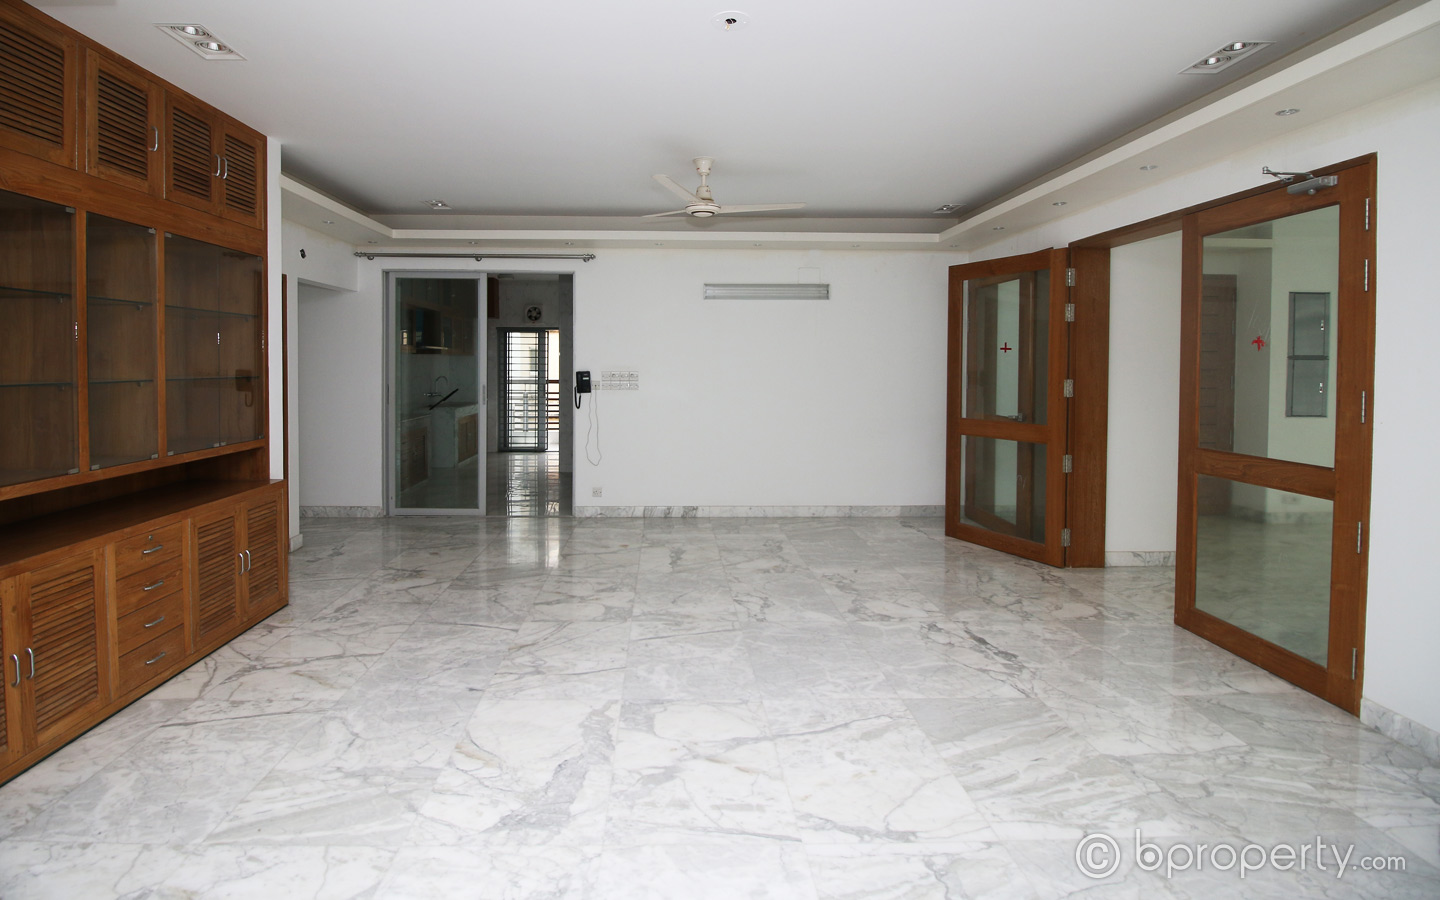 A vacant apartment in Gulshan 2